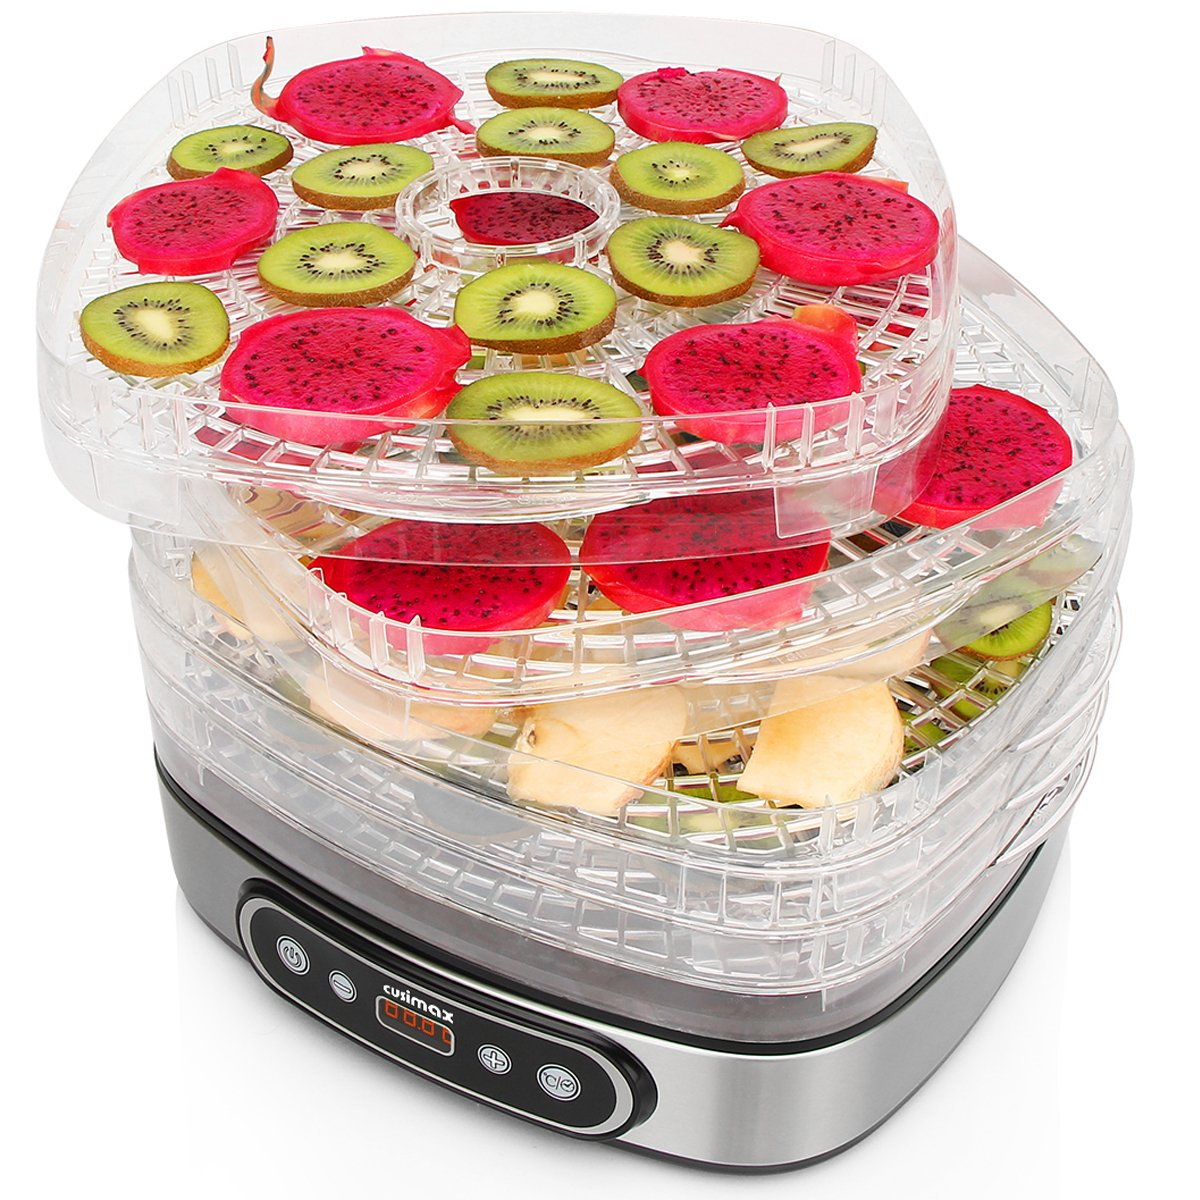 Cusimax Electric Food Dehydrator BPA-Free 5 Trays Food Preserver with Adjustable Temperature and Timer Led Display Fruit Vegetable Dryer Dehydrator 450W for baby Pet snacks